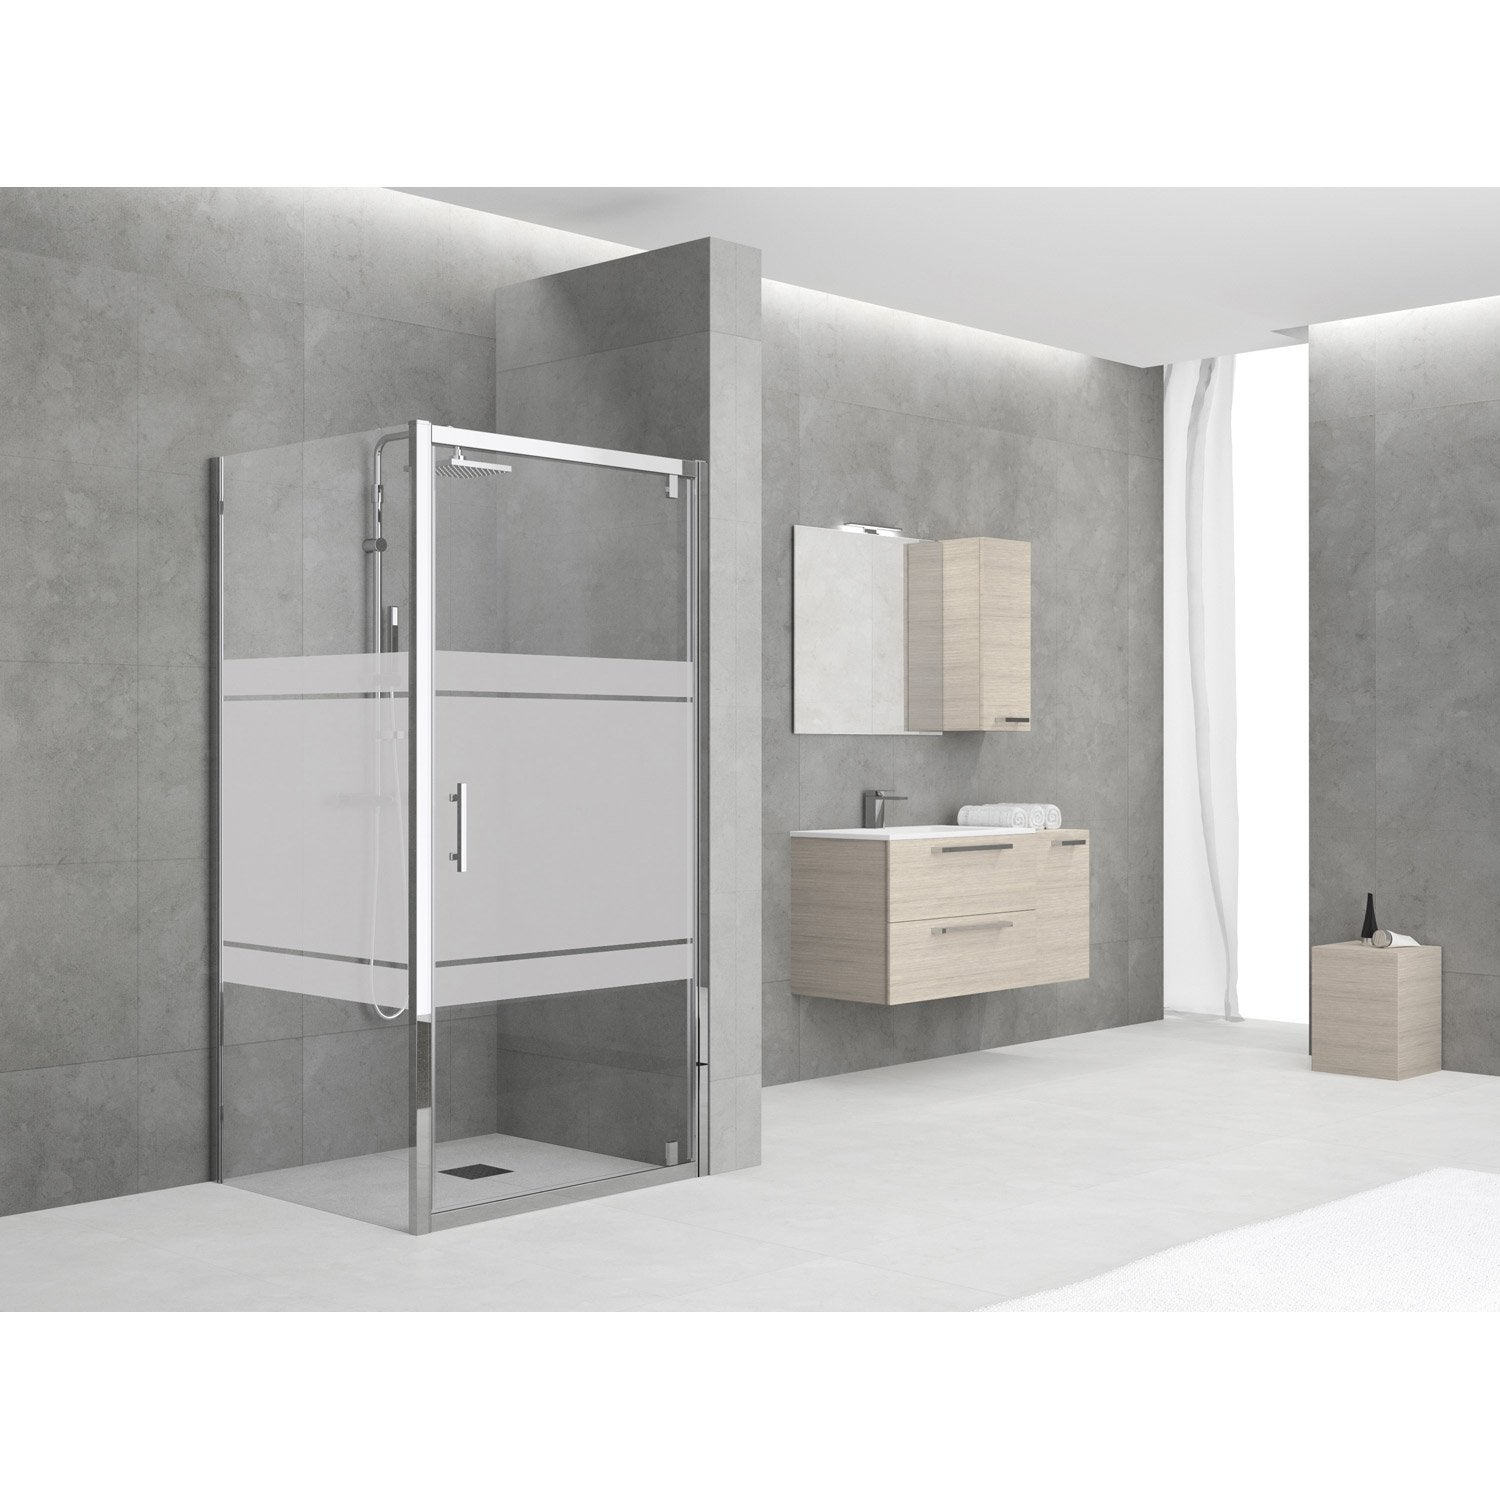 porte de douche pivotante 84 90 cm profil chrom elyt. Black Bedroom Furniture Sets. Home Design Ideas